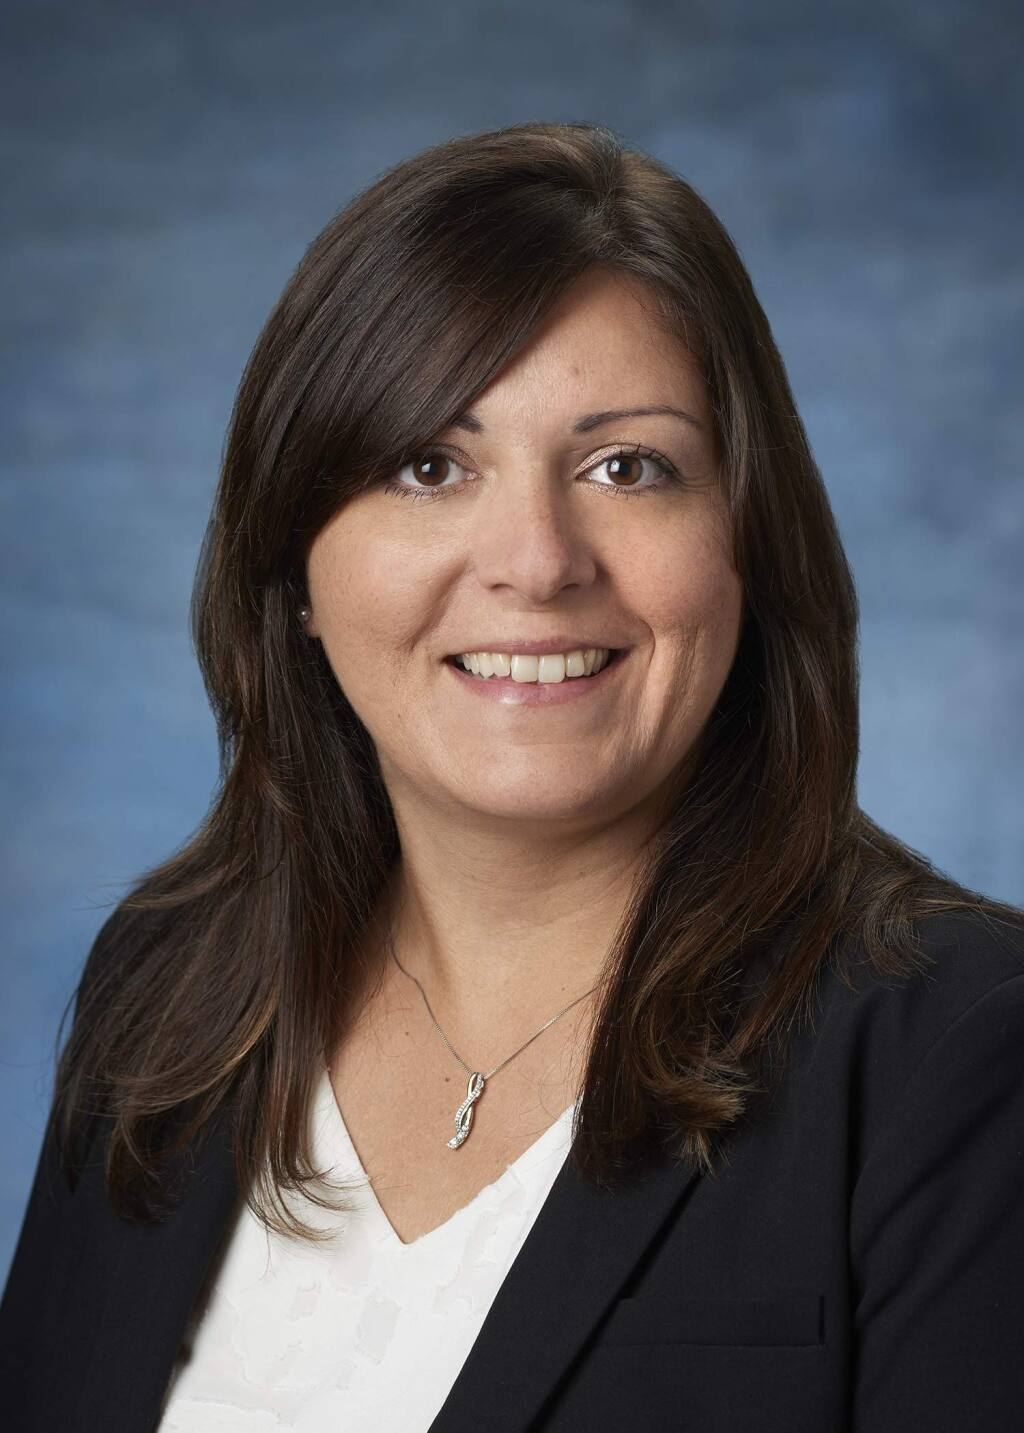 Stacy McKee, 39, assistant controller for Exchange Bank in Santa Rosa, is one of North Bay Business Journal's Forty Under 40 notable young professionals for 2019. (PROVIDED PHOTO)